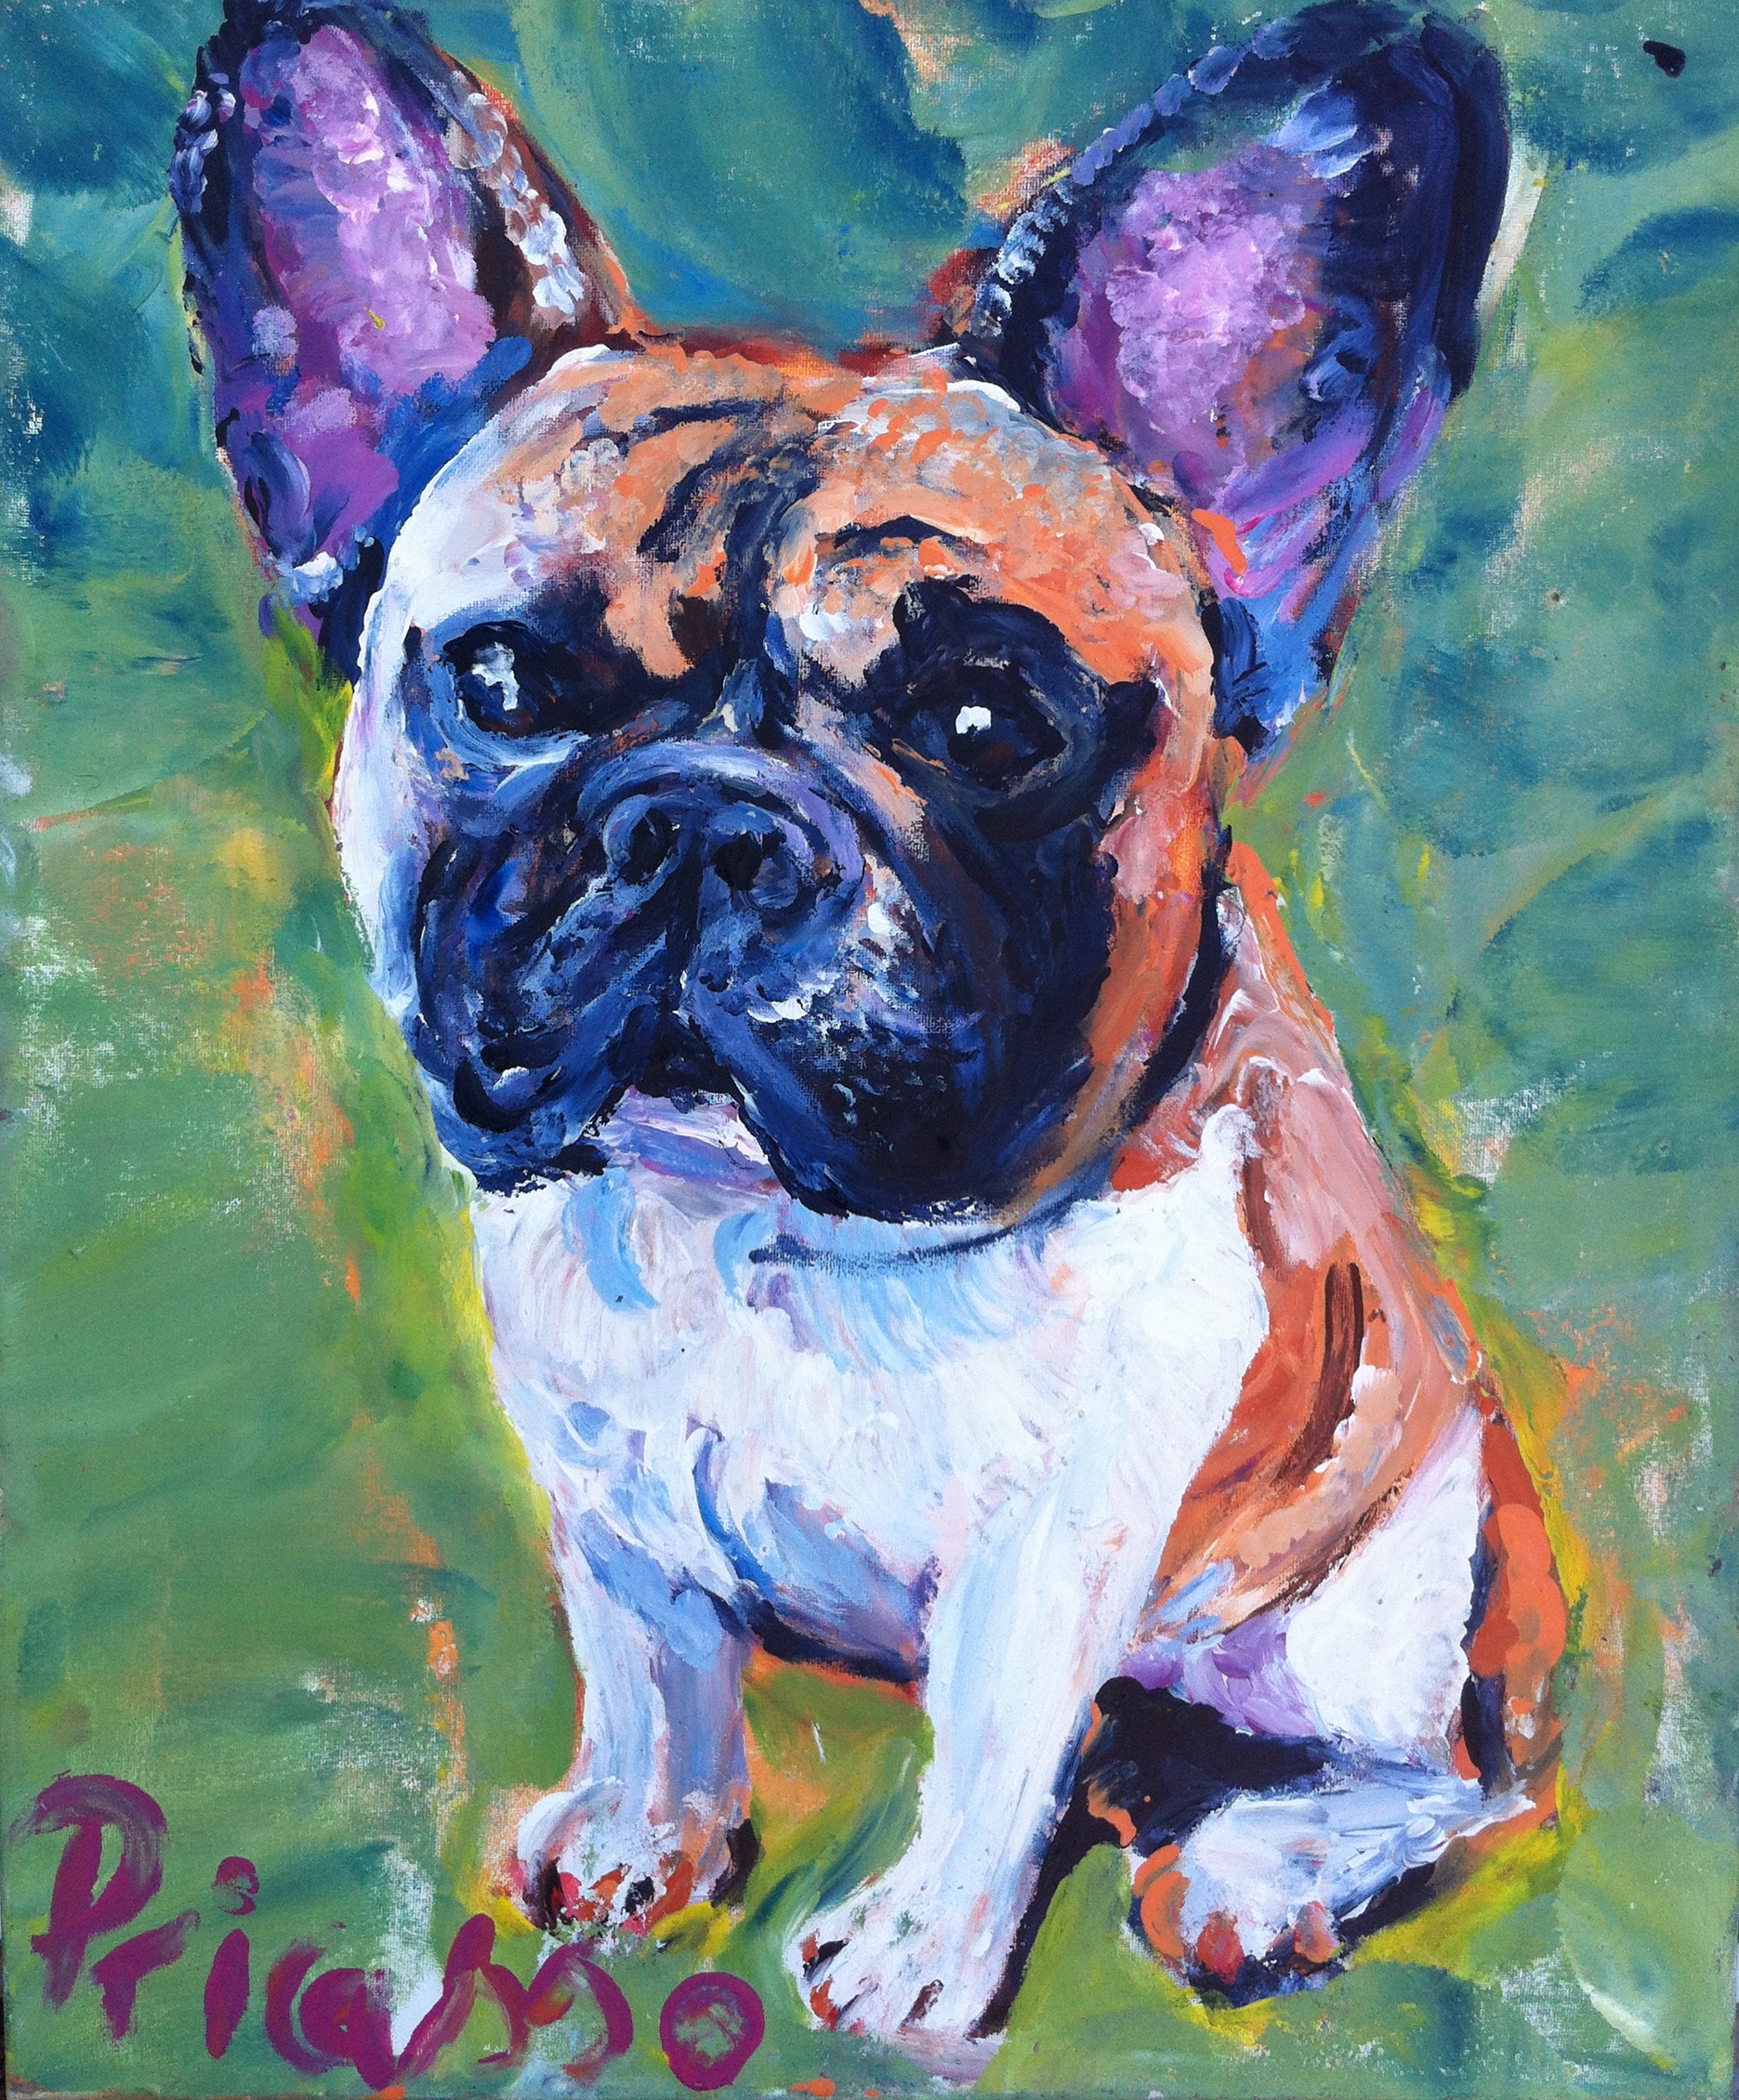 Portrait of a french bulldog by Pricasso